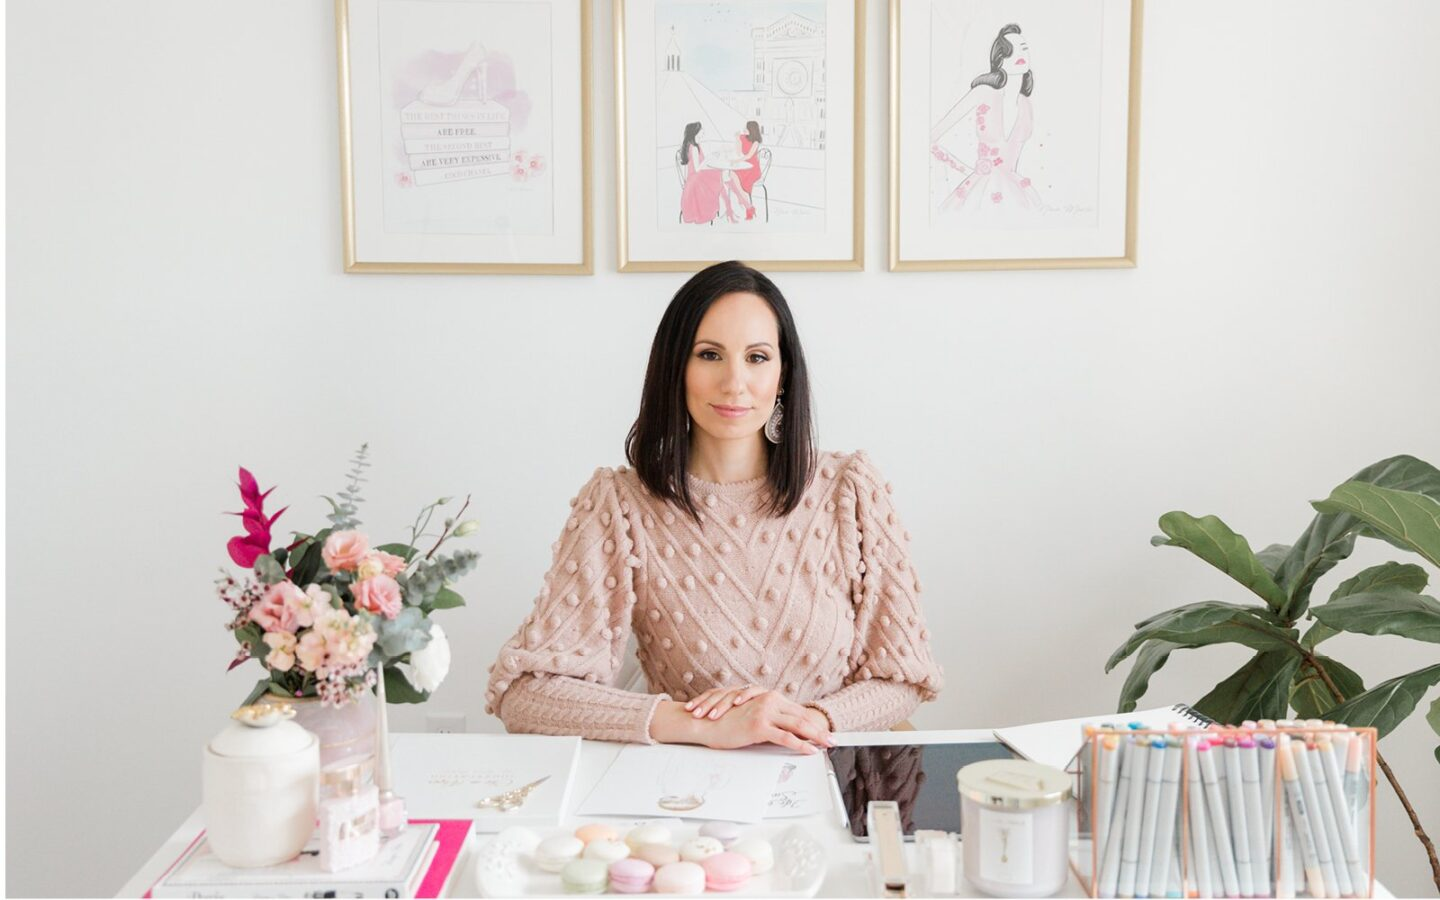 Interview With Nina Maric - The Artist Behind the Brand Chic on Paper